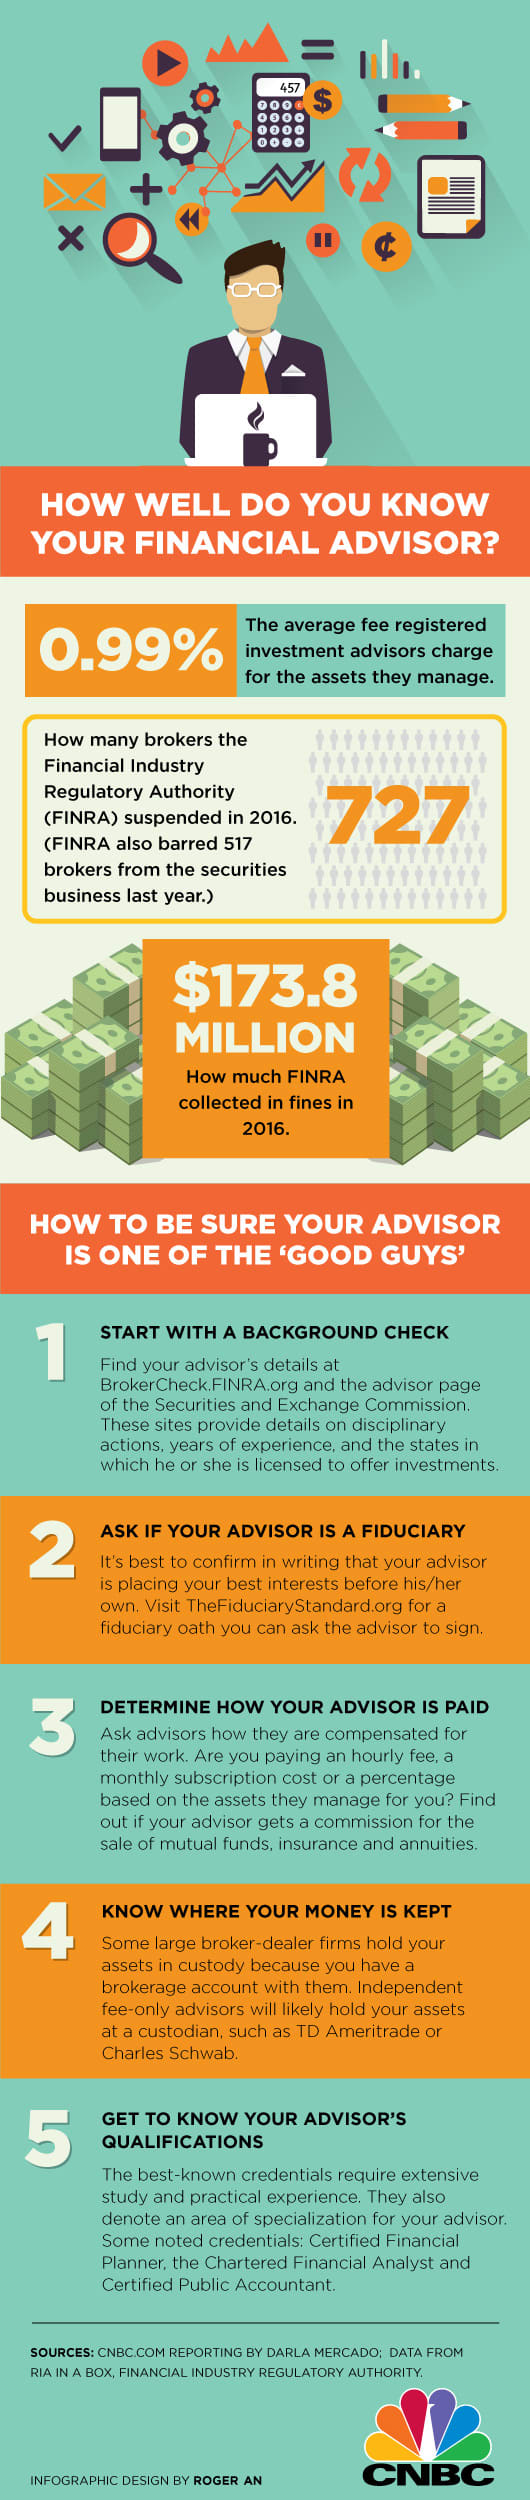 Vetting a financial advisor infographic